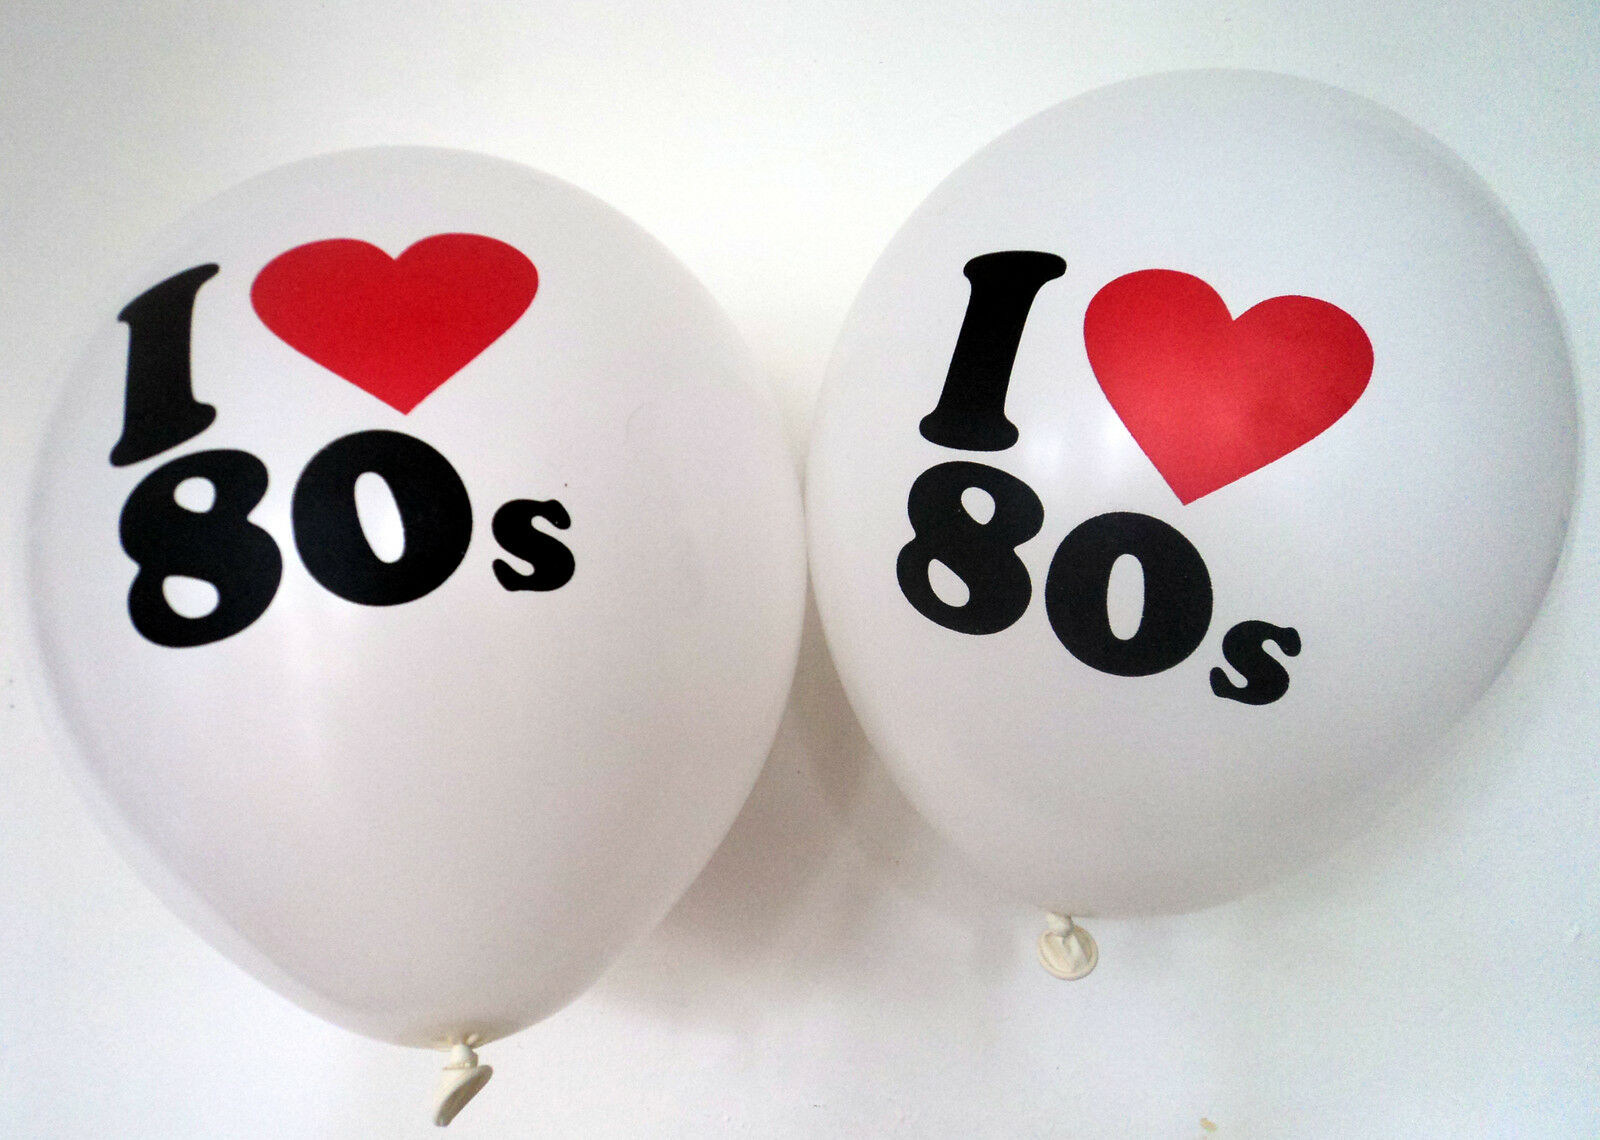 80s party decoration i love 80s balloons x 10 12 for 80s decoration party